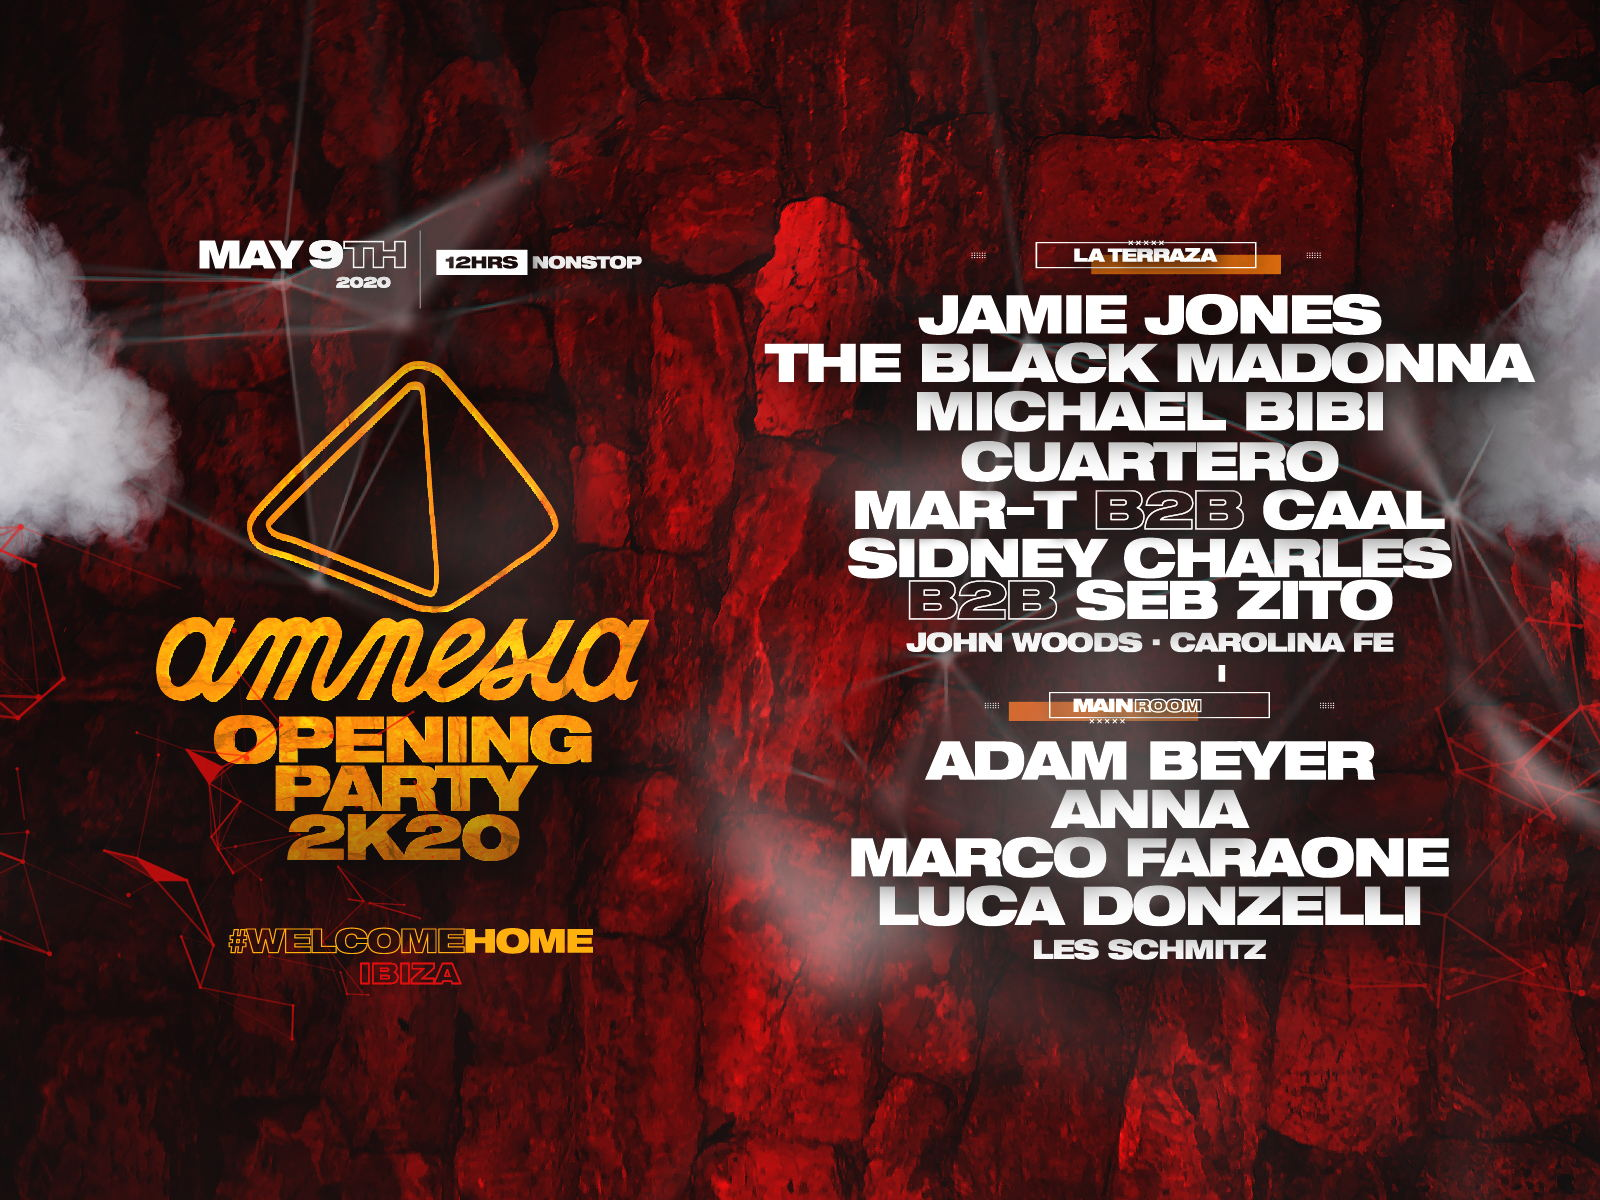 Amnesia opening party 2020 lineup announced